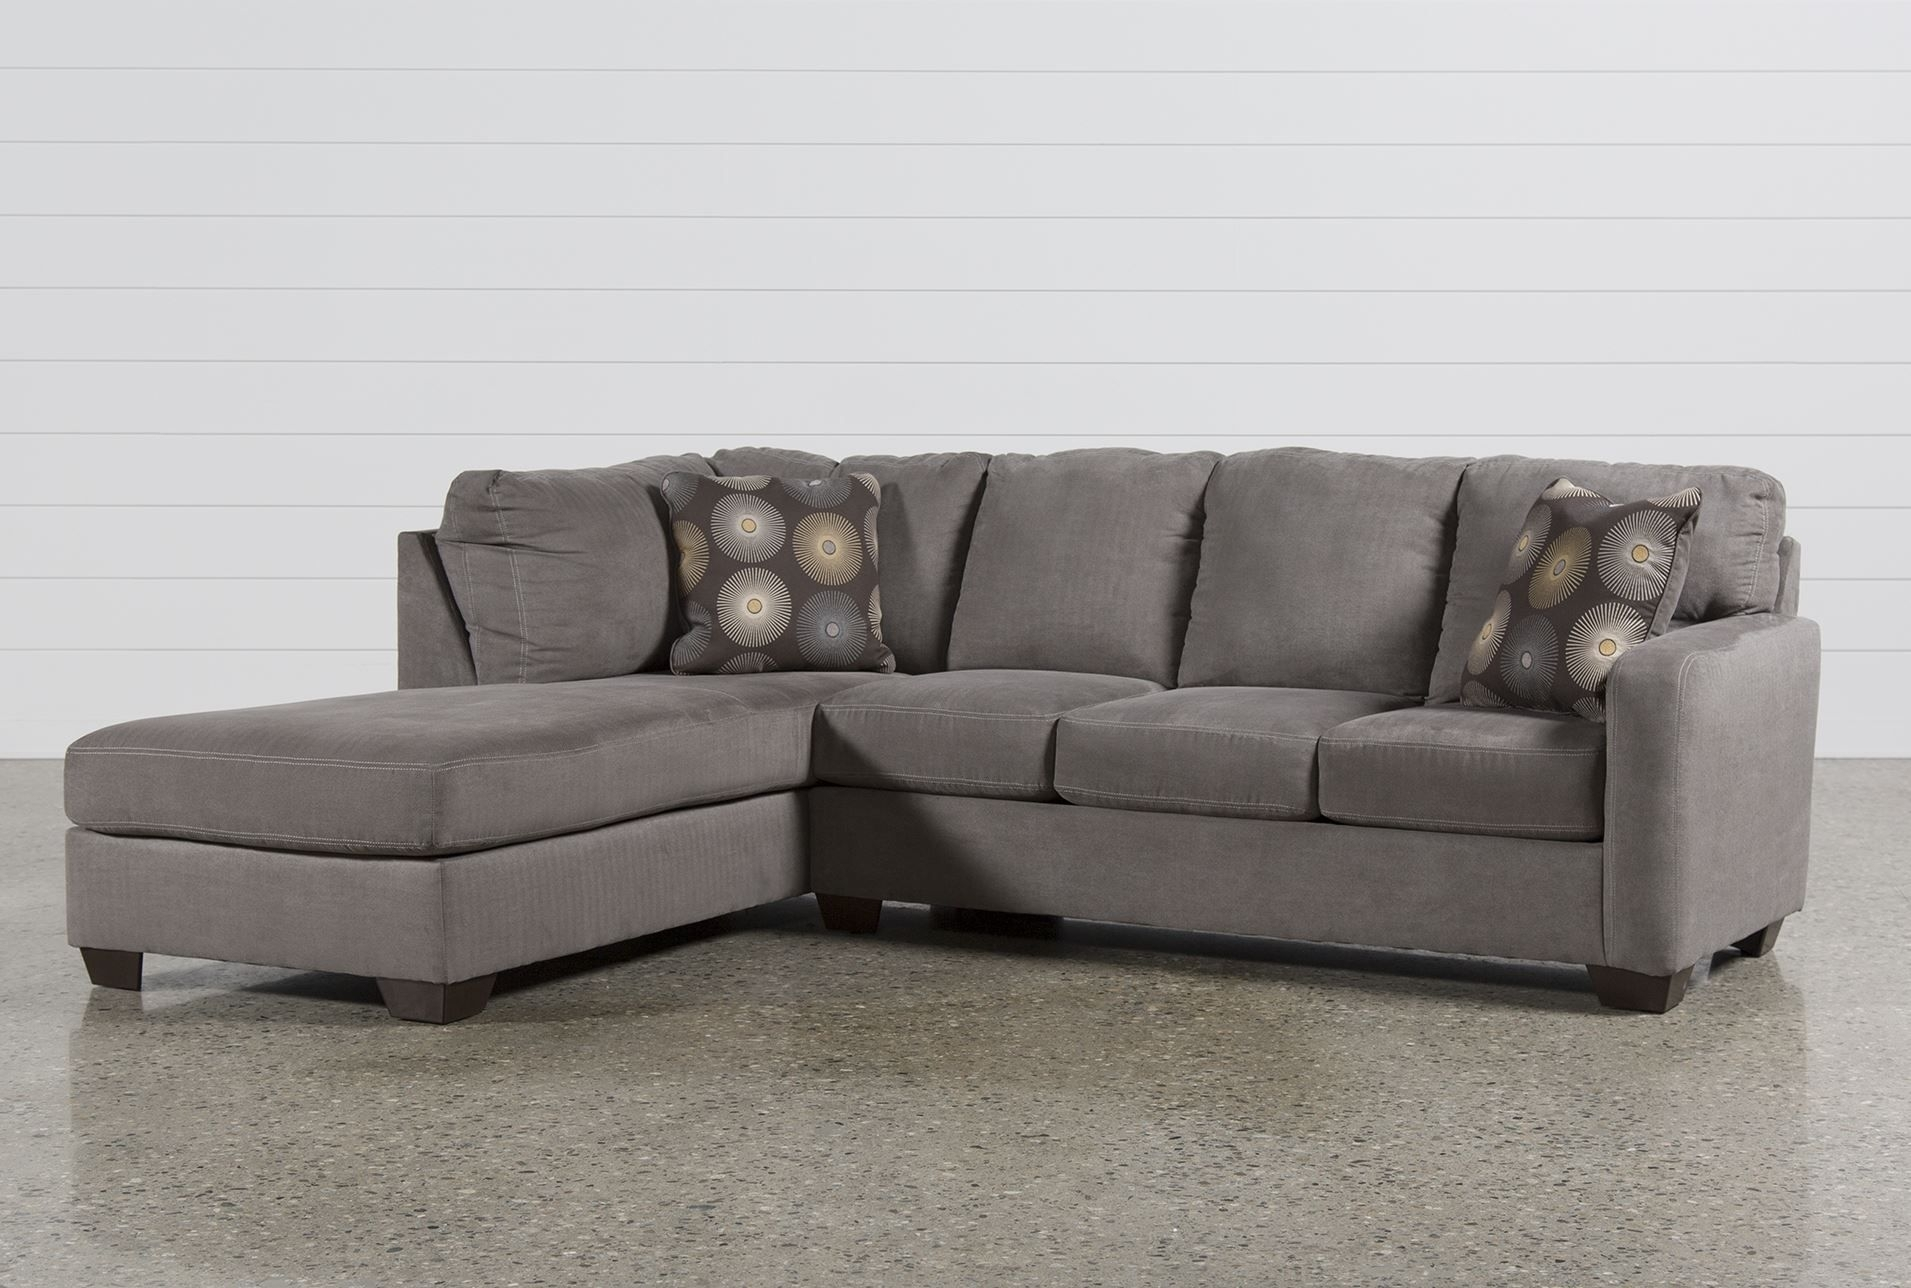 Zella Charcoal 2 Piece Sectional W/laf Chaise - Signature in Aspen 2 Piece Sectionals With Laf Chaise (Image 30 of 30)